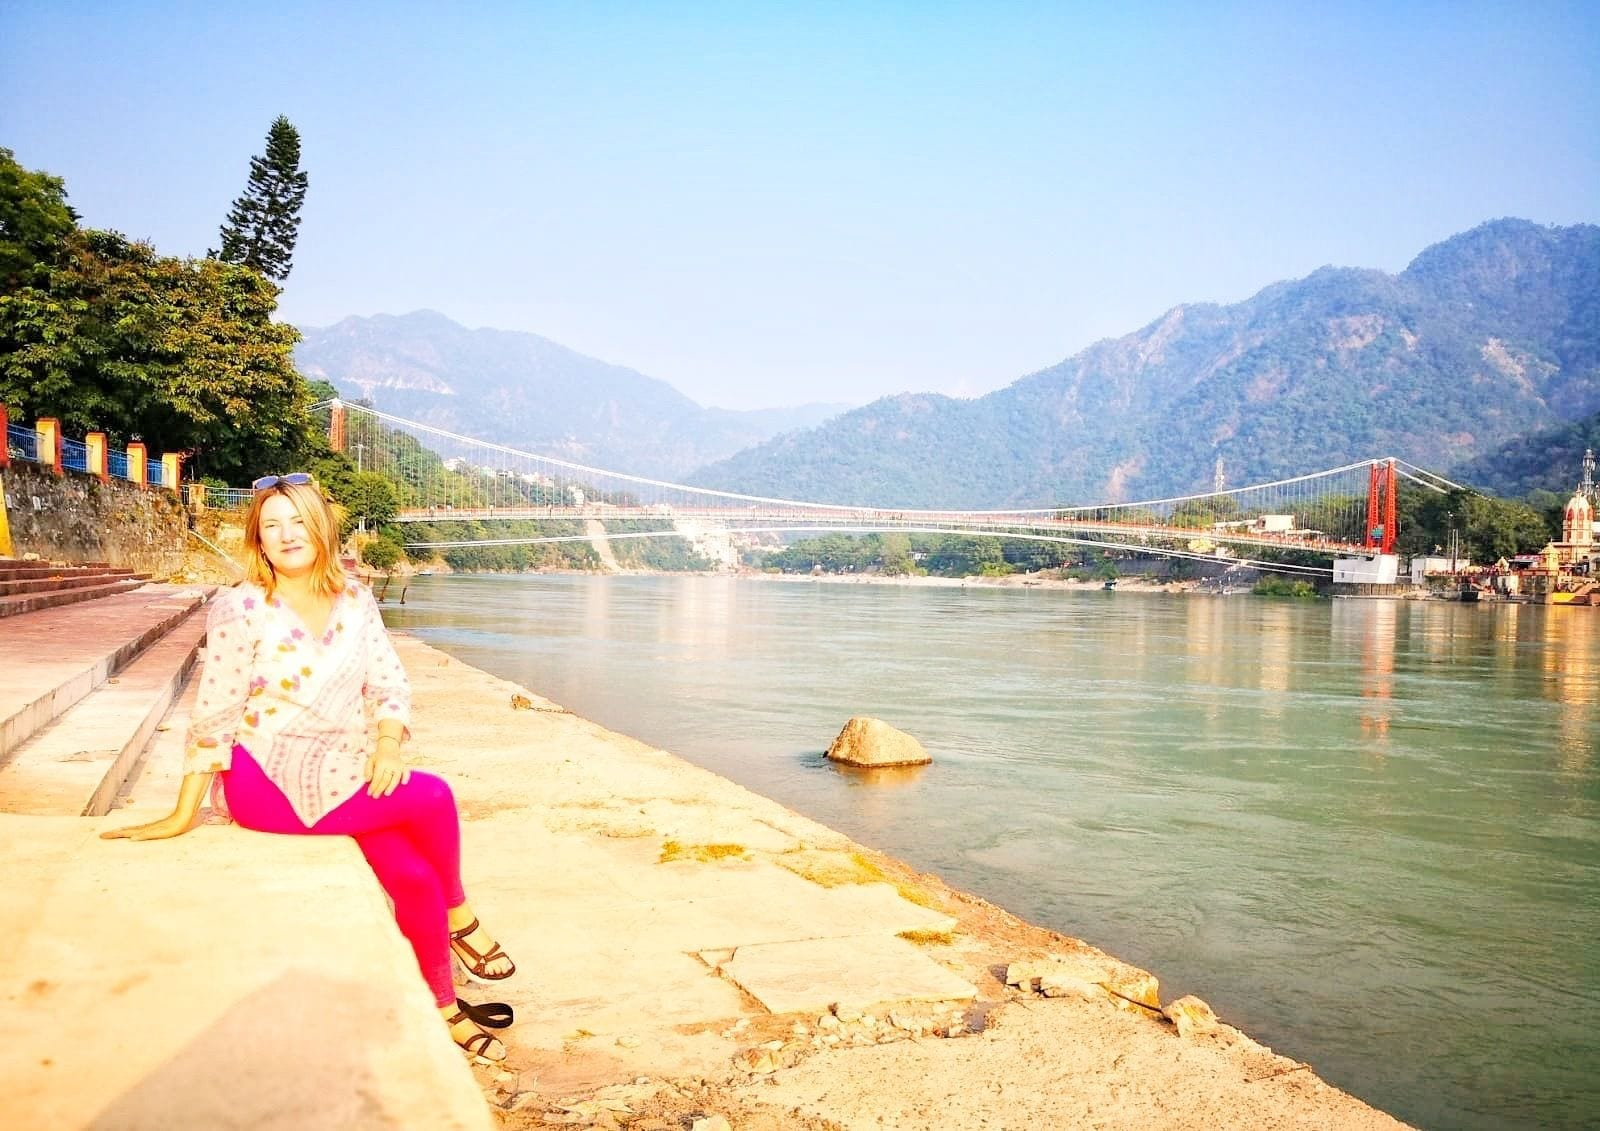 Mariellen Ward wears a white Indian top and pink trousers and poses on the banks of the Ganga river in Rishikesh, mountains behind her.